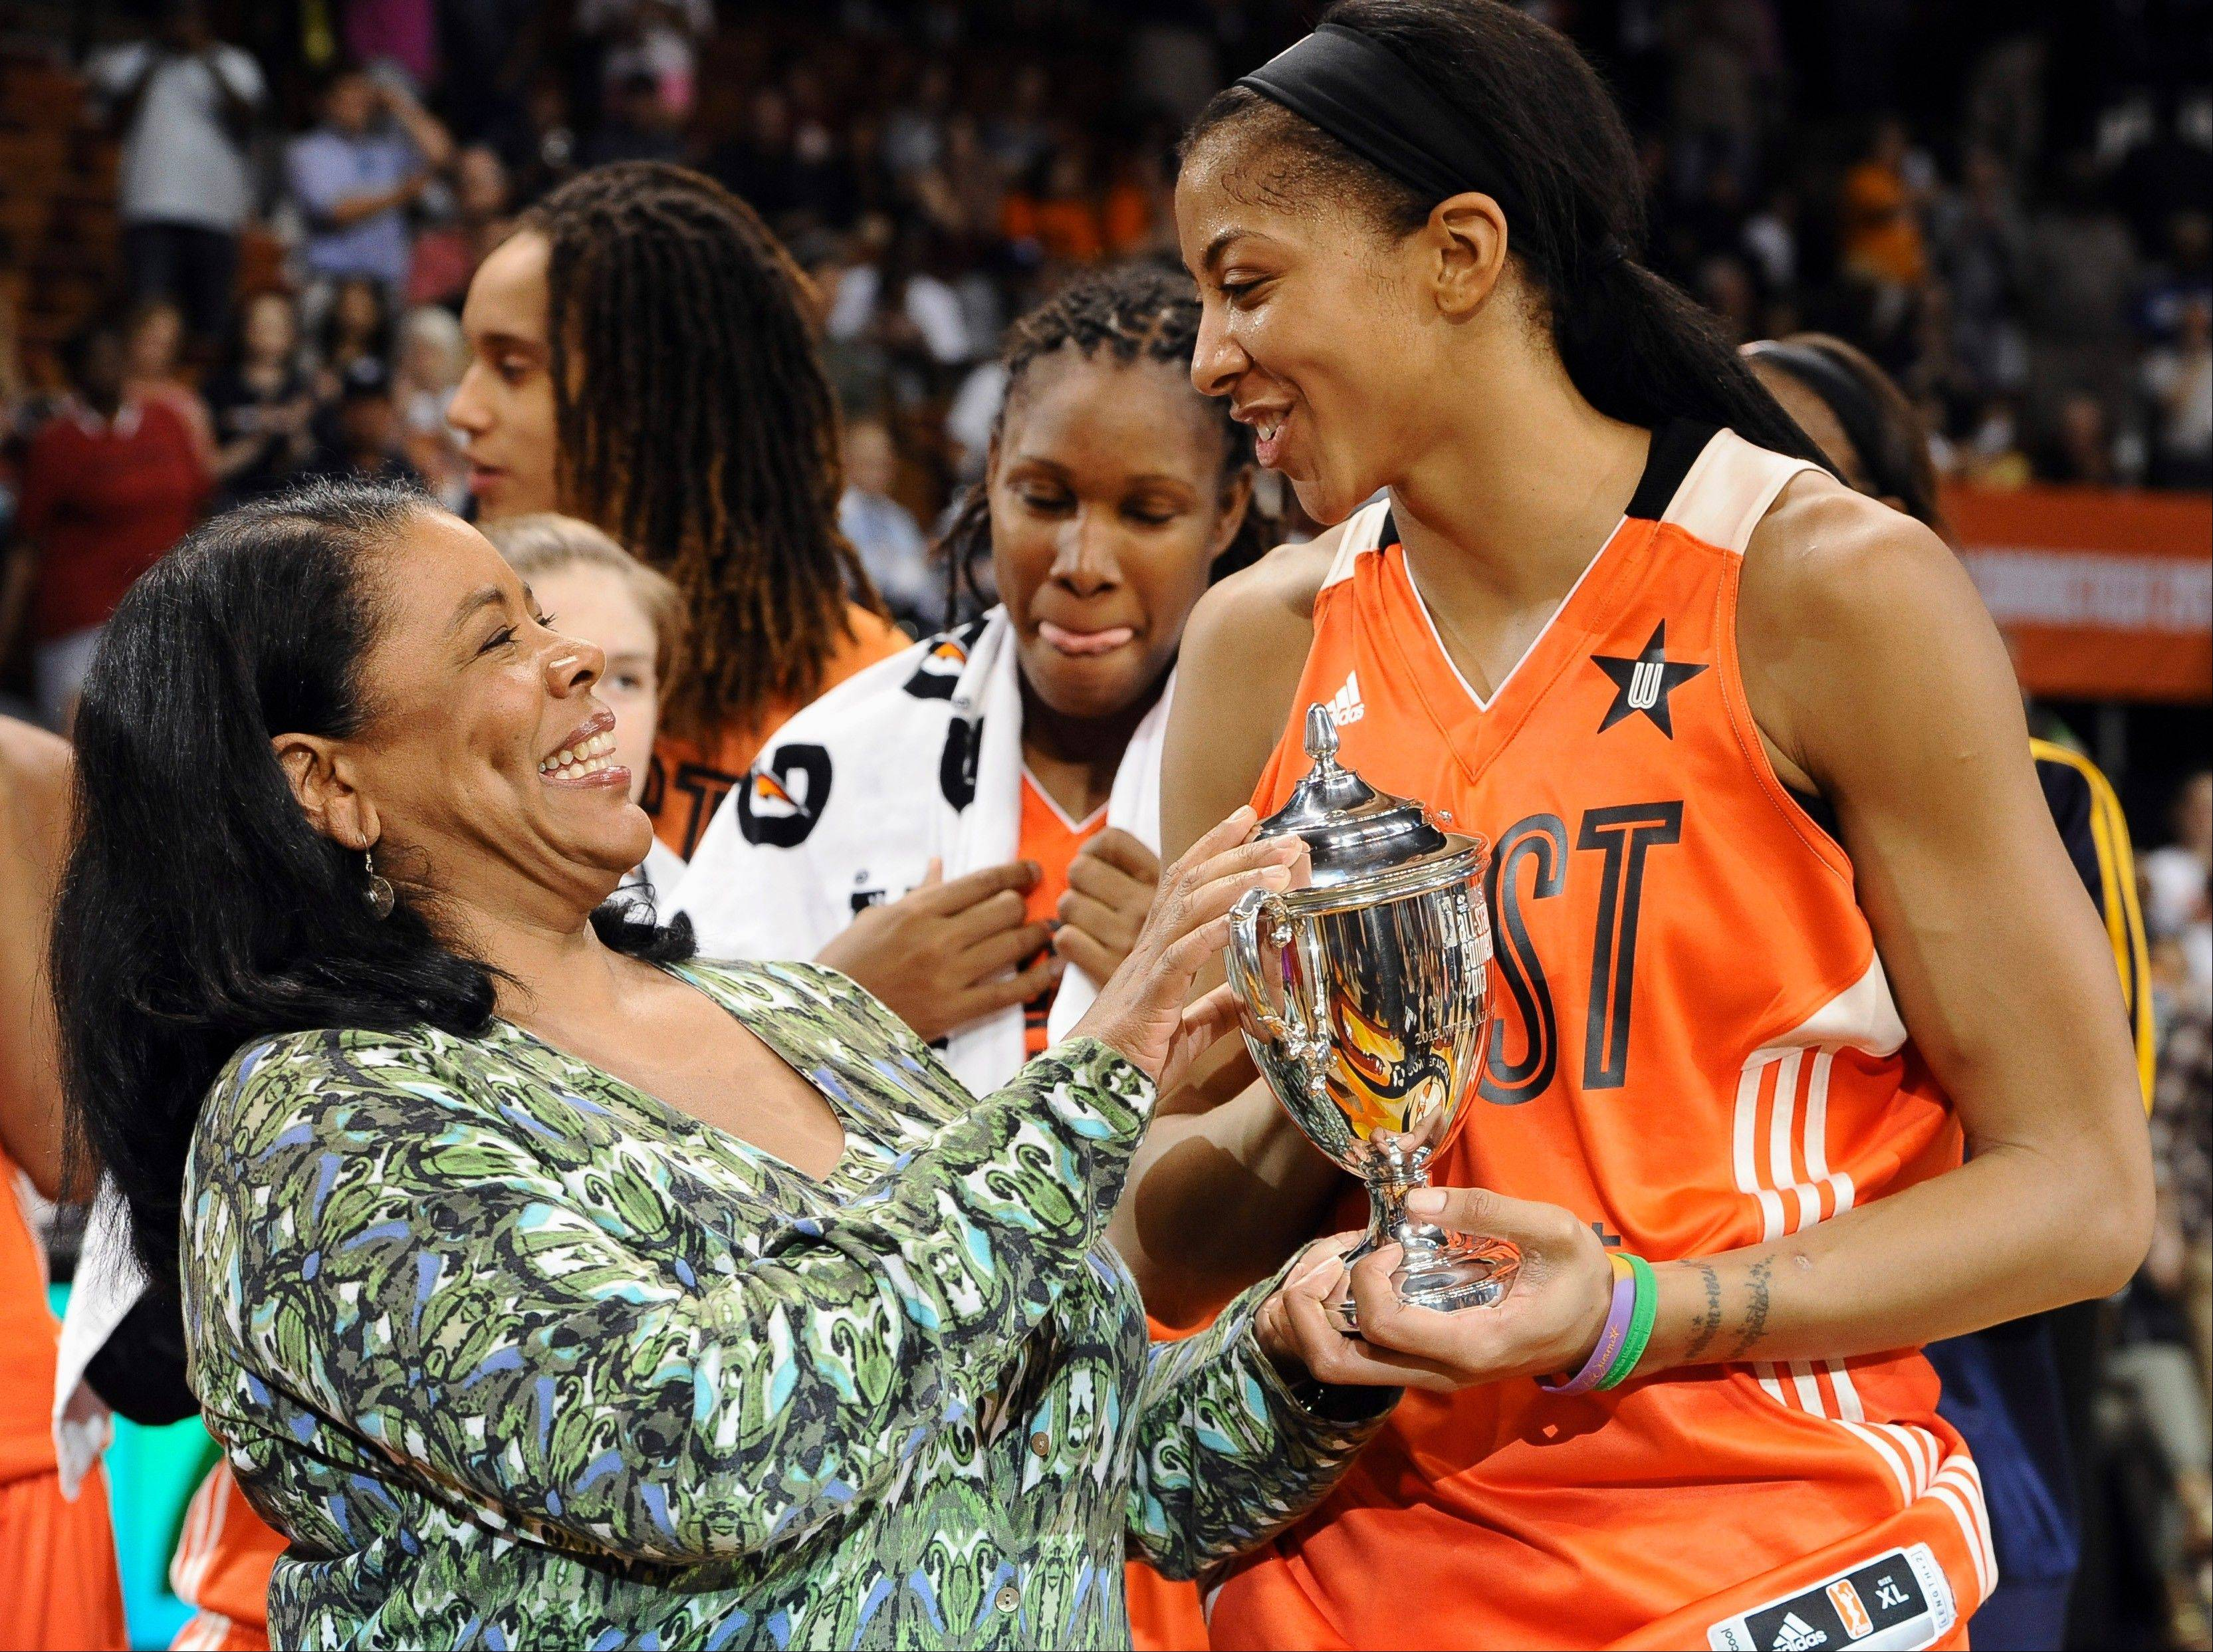 Candace Parker, the Sparks superstar who picked up MVP trophies for the WNBA regular season and the 2013 all-star game, no doubt is eager to hear if WNBA President Laurel Richie can secure a buyer for the Los Angeles franchise.